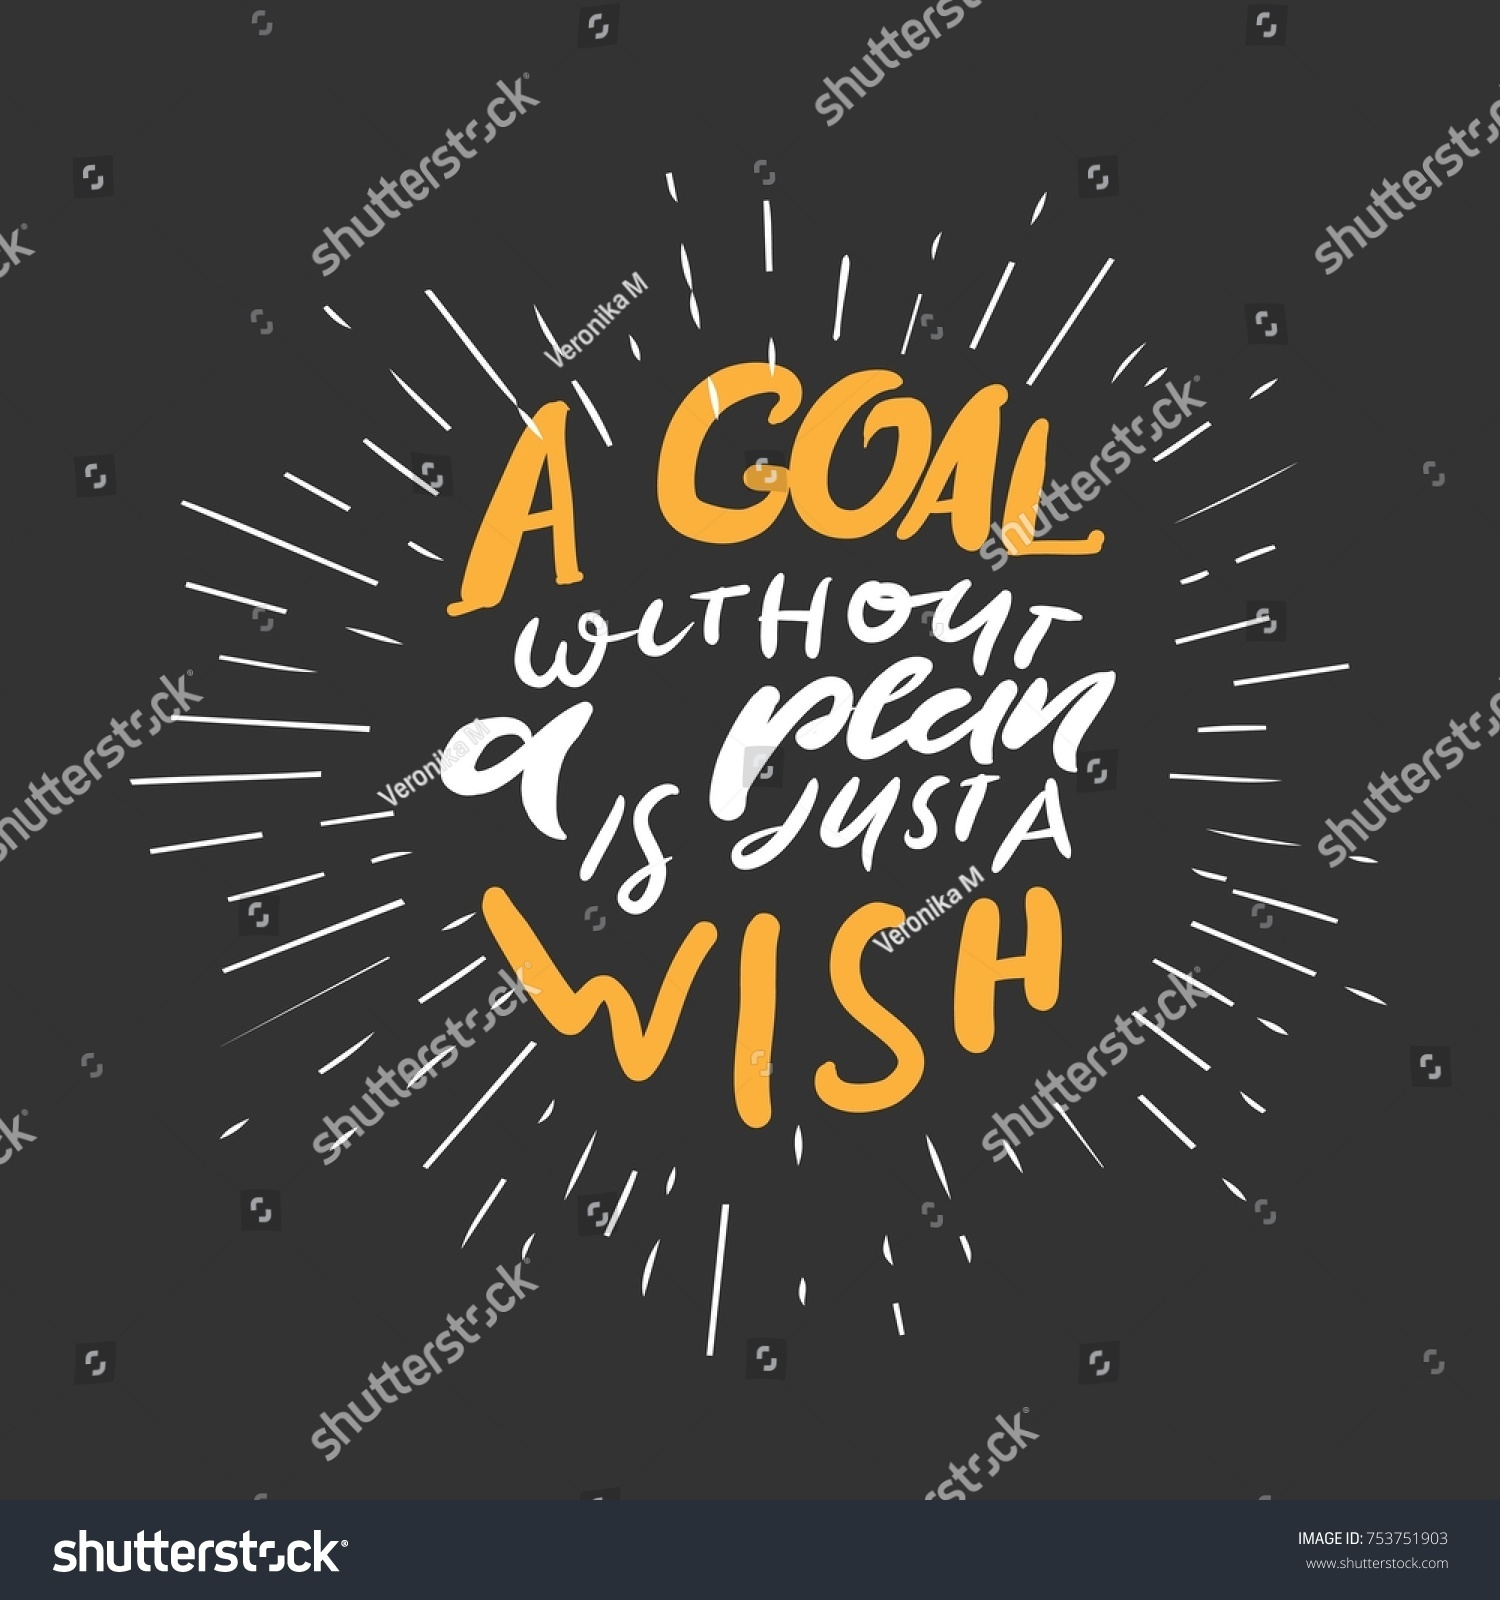 Wish Quotes Goal Without Plan Just Wish Quotes Stock Vector 753751903